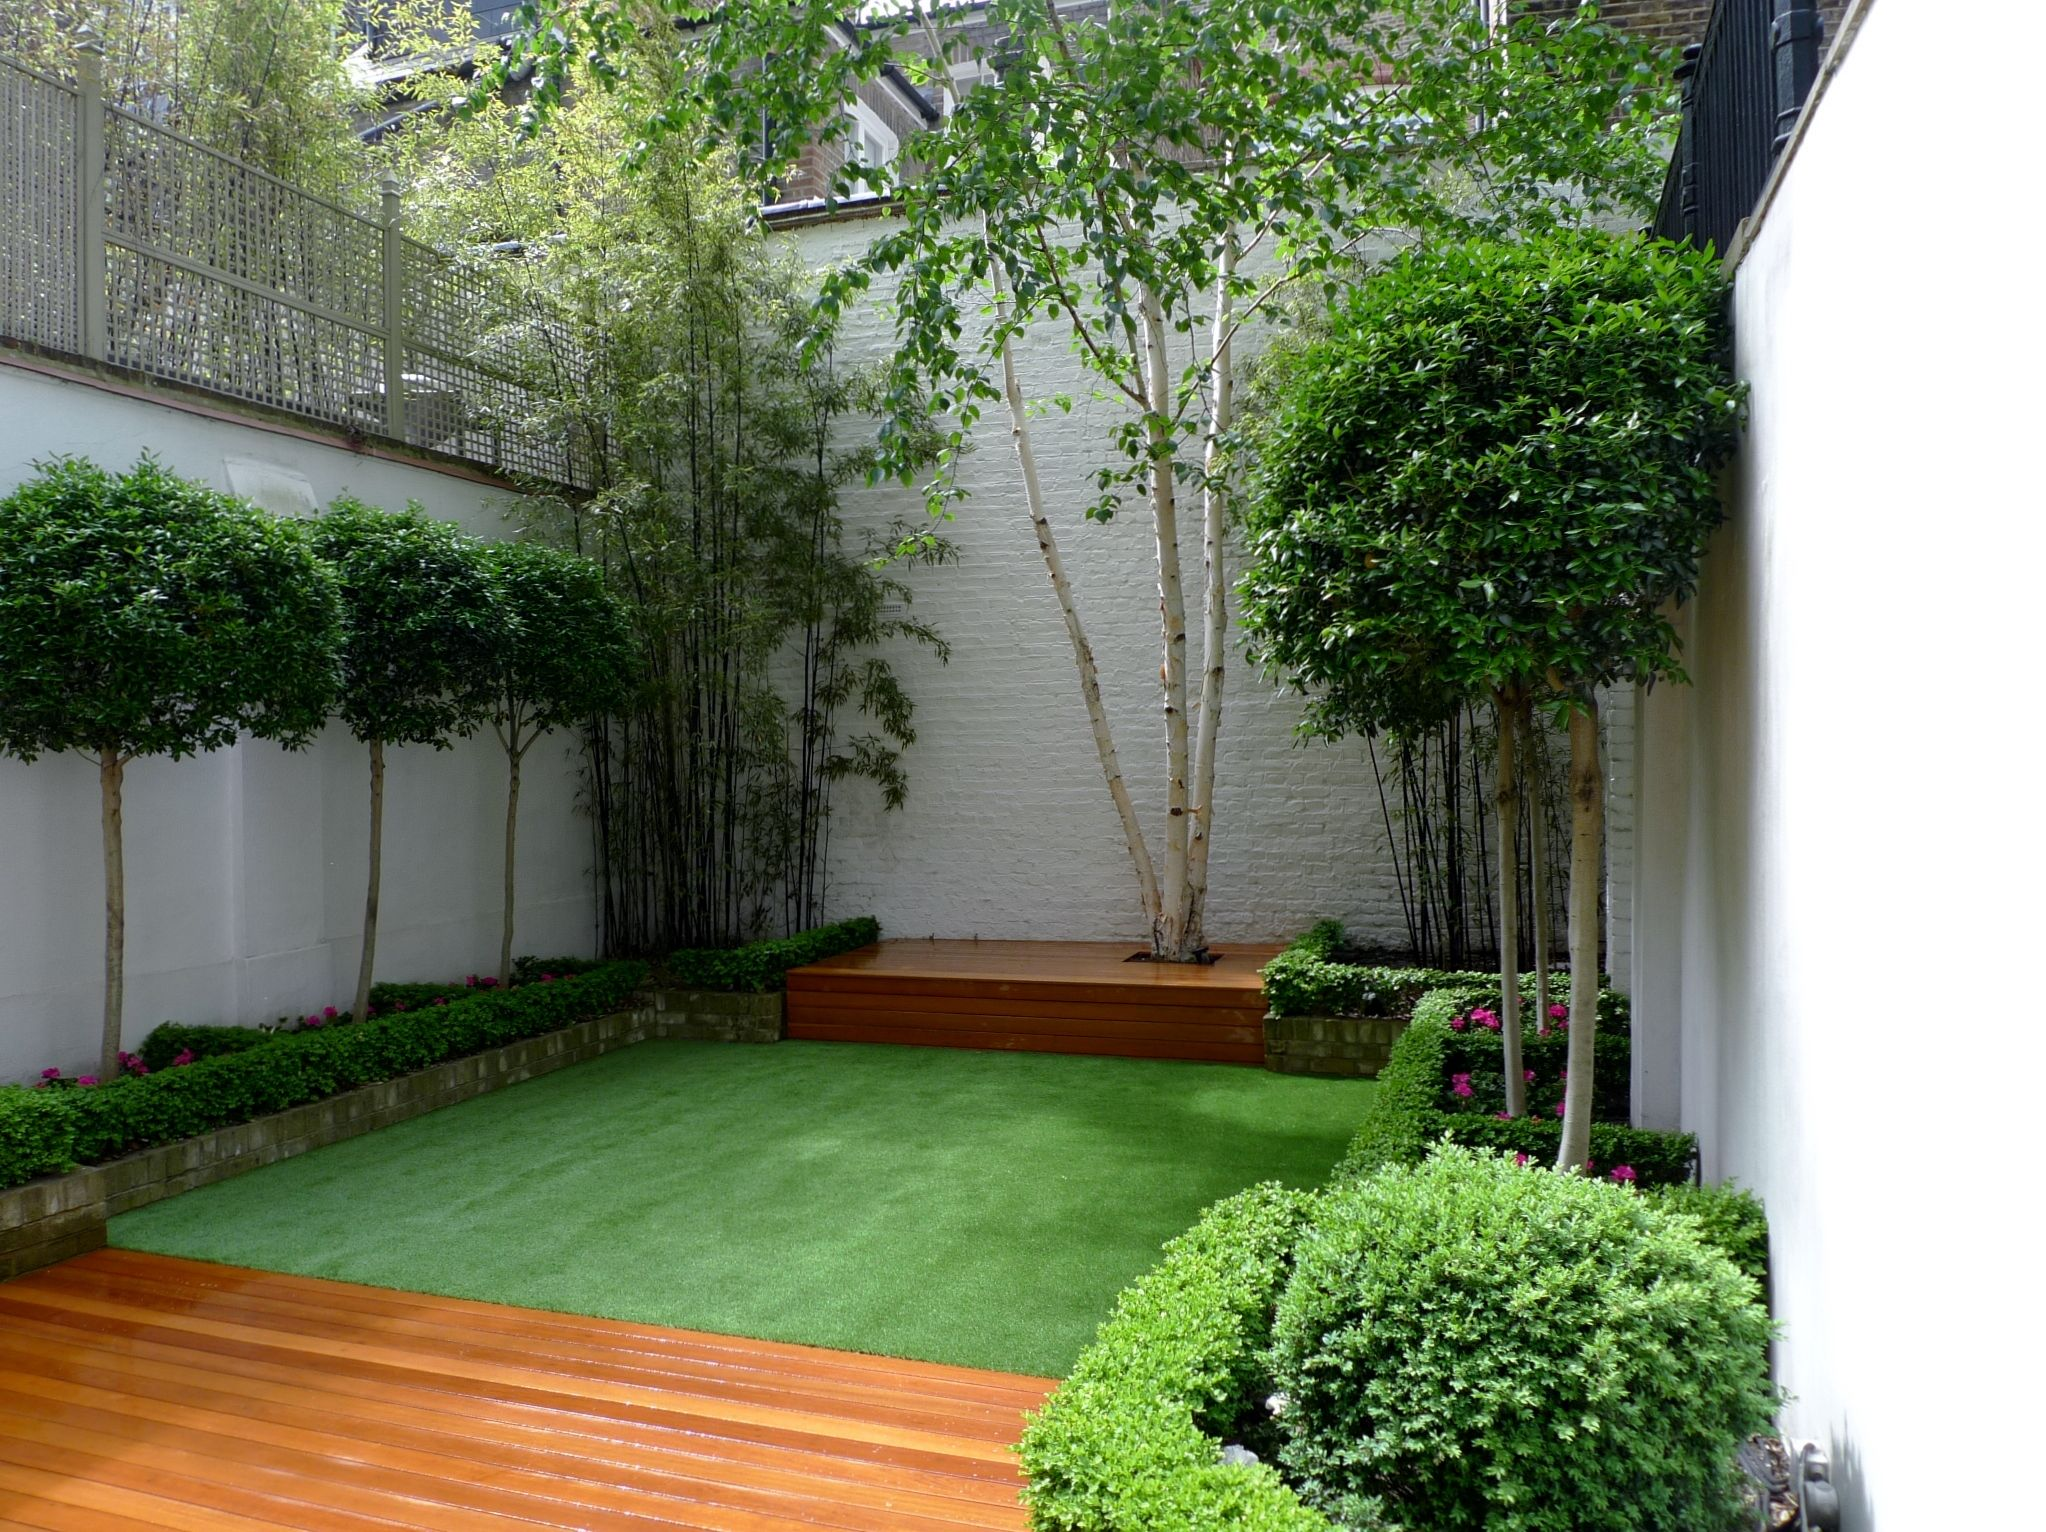 Garden Design Artificial Grass chelsea garden 2015 design low maintenance artificial grass